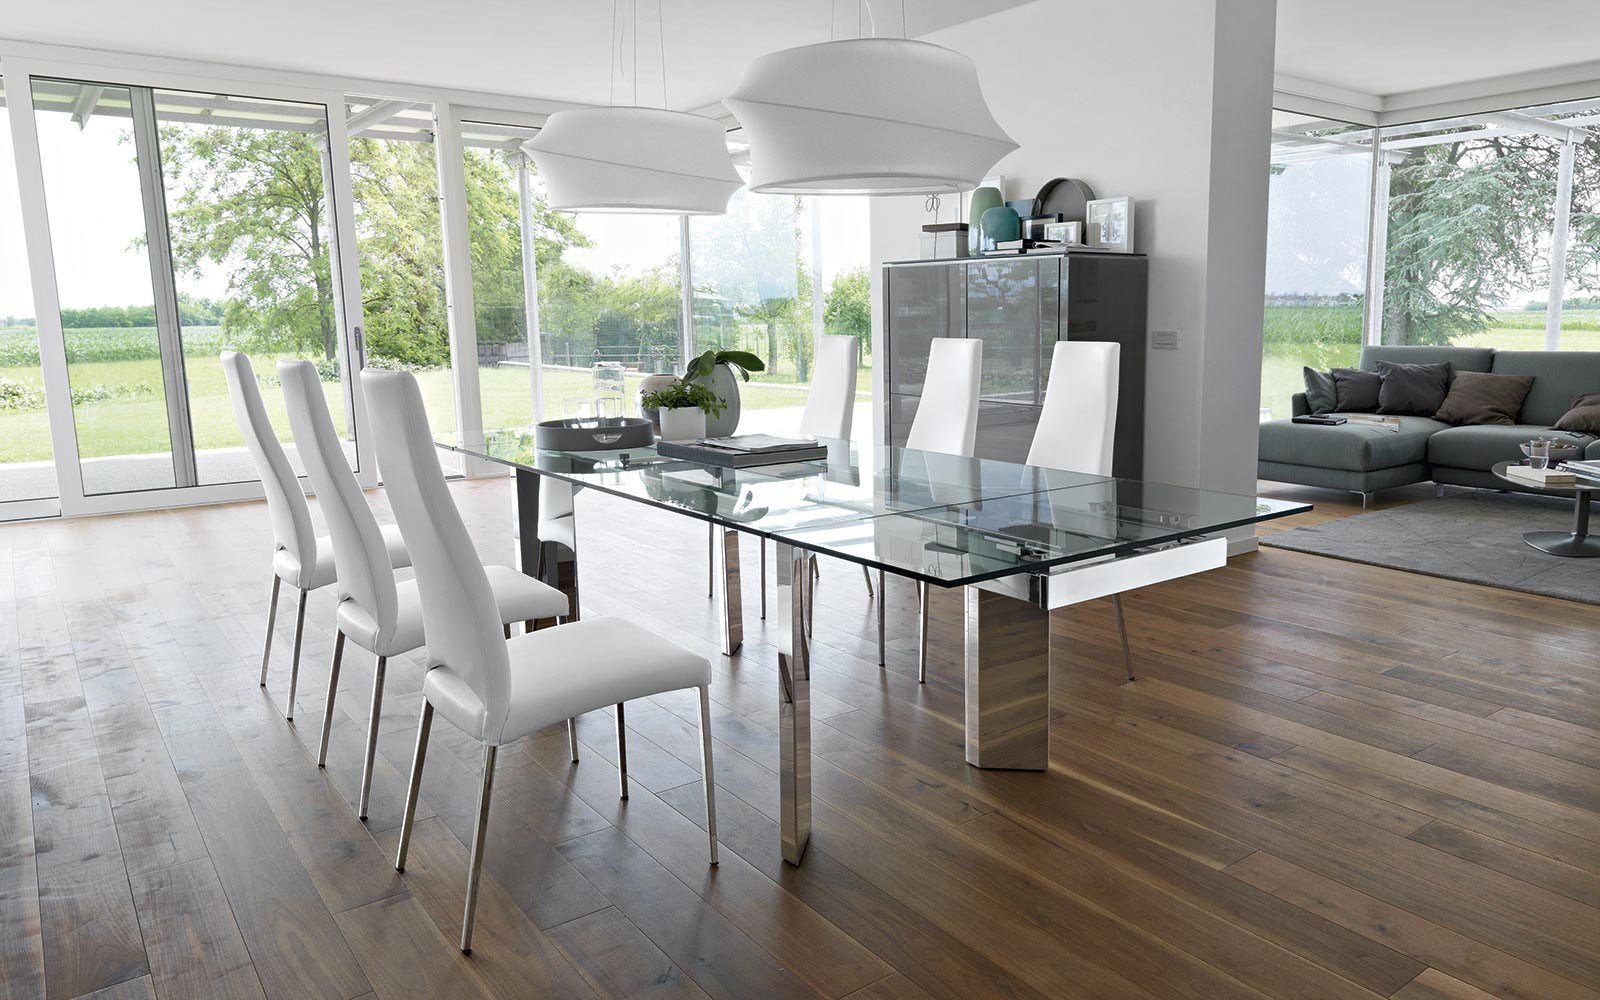 Tower tavolo in vetro by calligaris for Tavoli allungabili calligaris cristallo